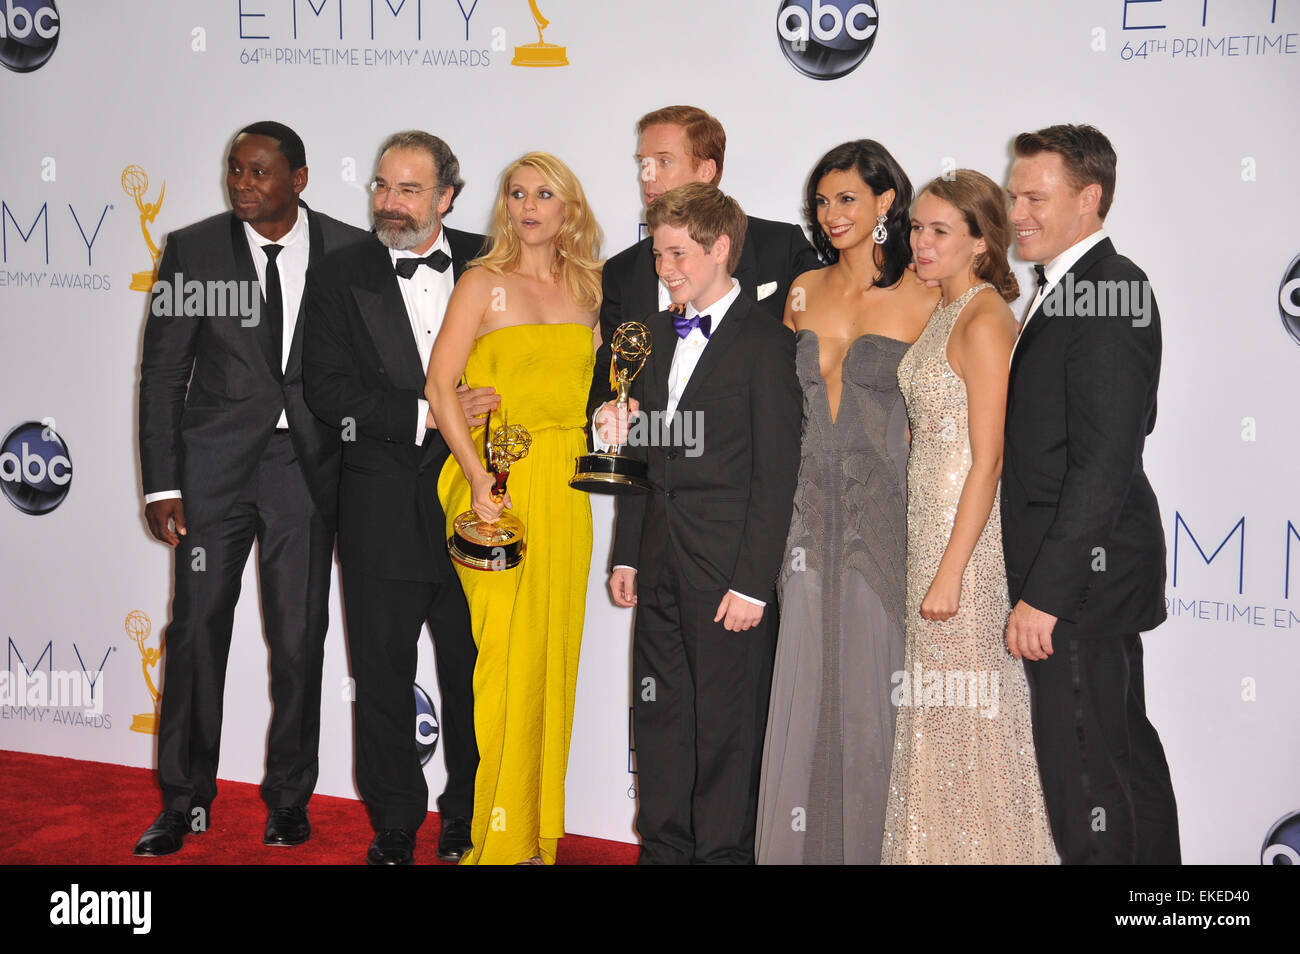 LOS ANGELES, CA - SEPTEMBER 23, 2012: Claire Danes & Damian Lewis & stars of Homeland at the 64th Primetime - Stock Image